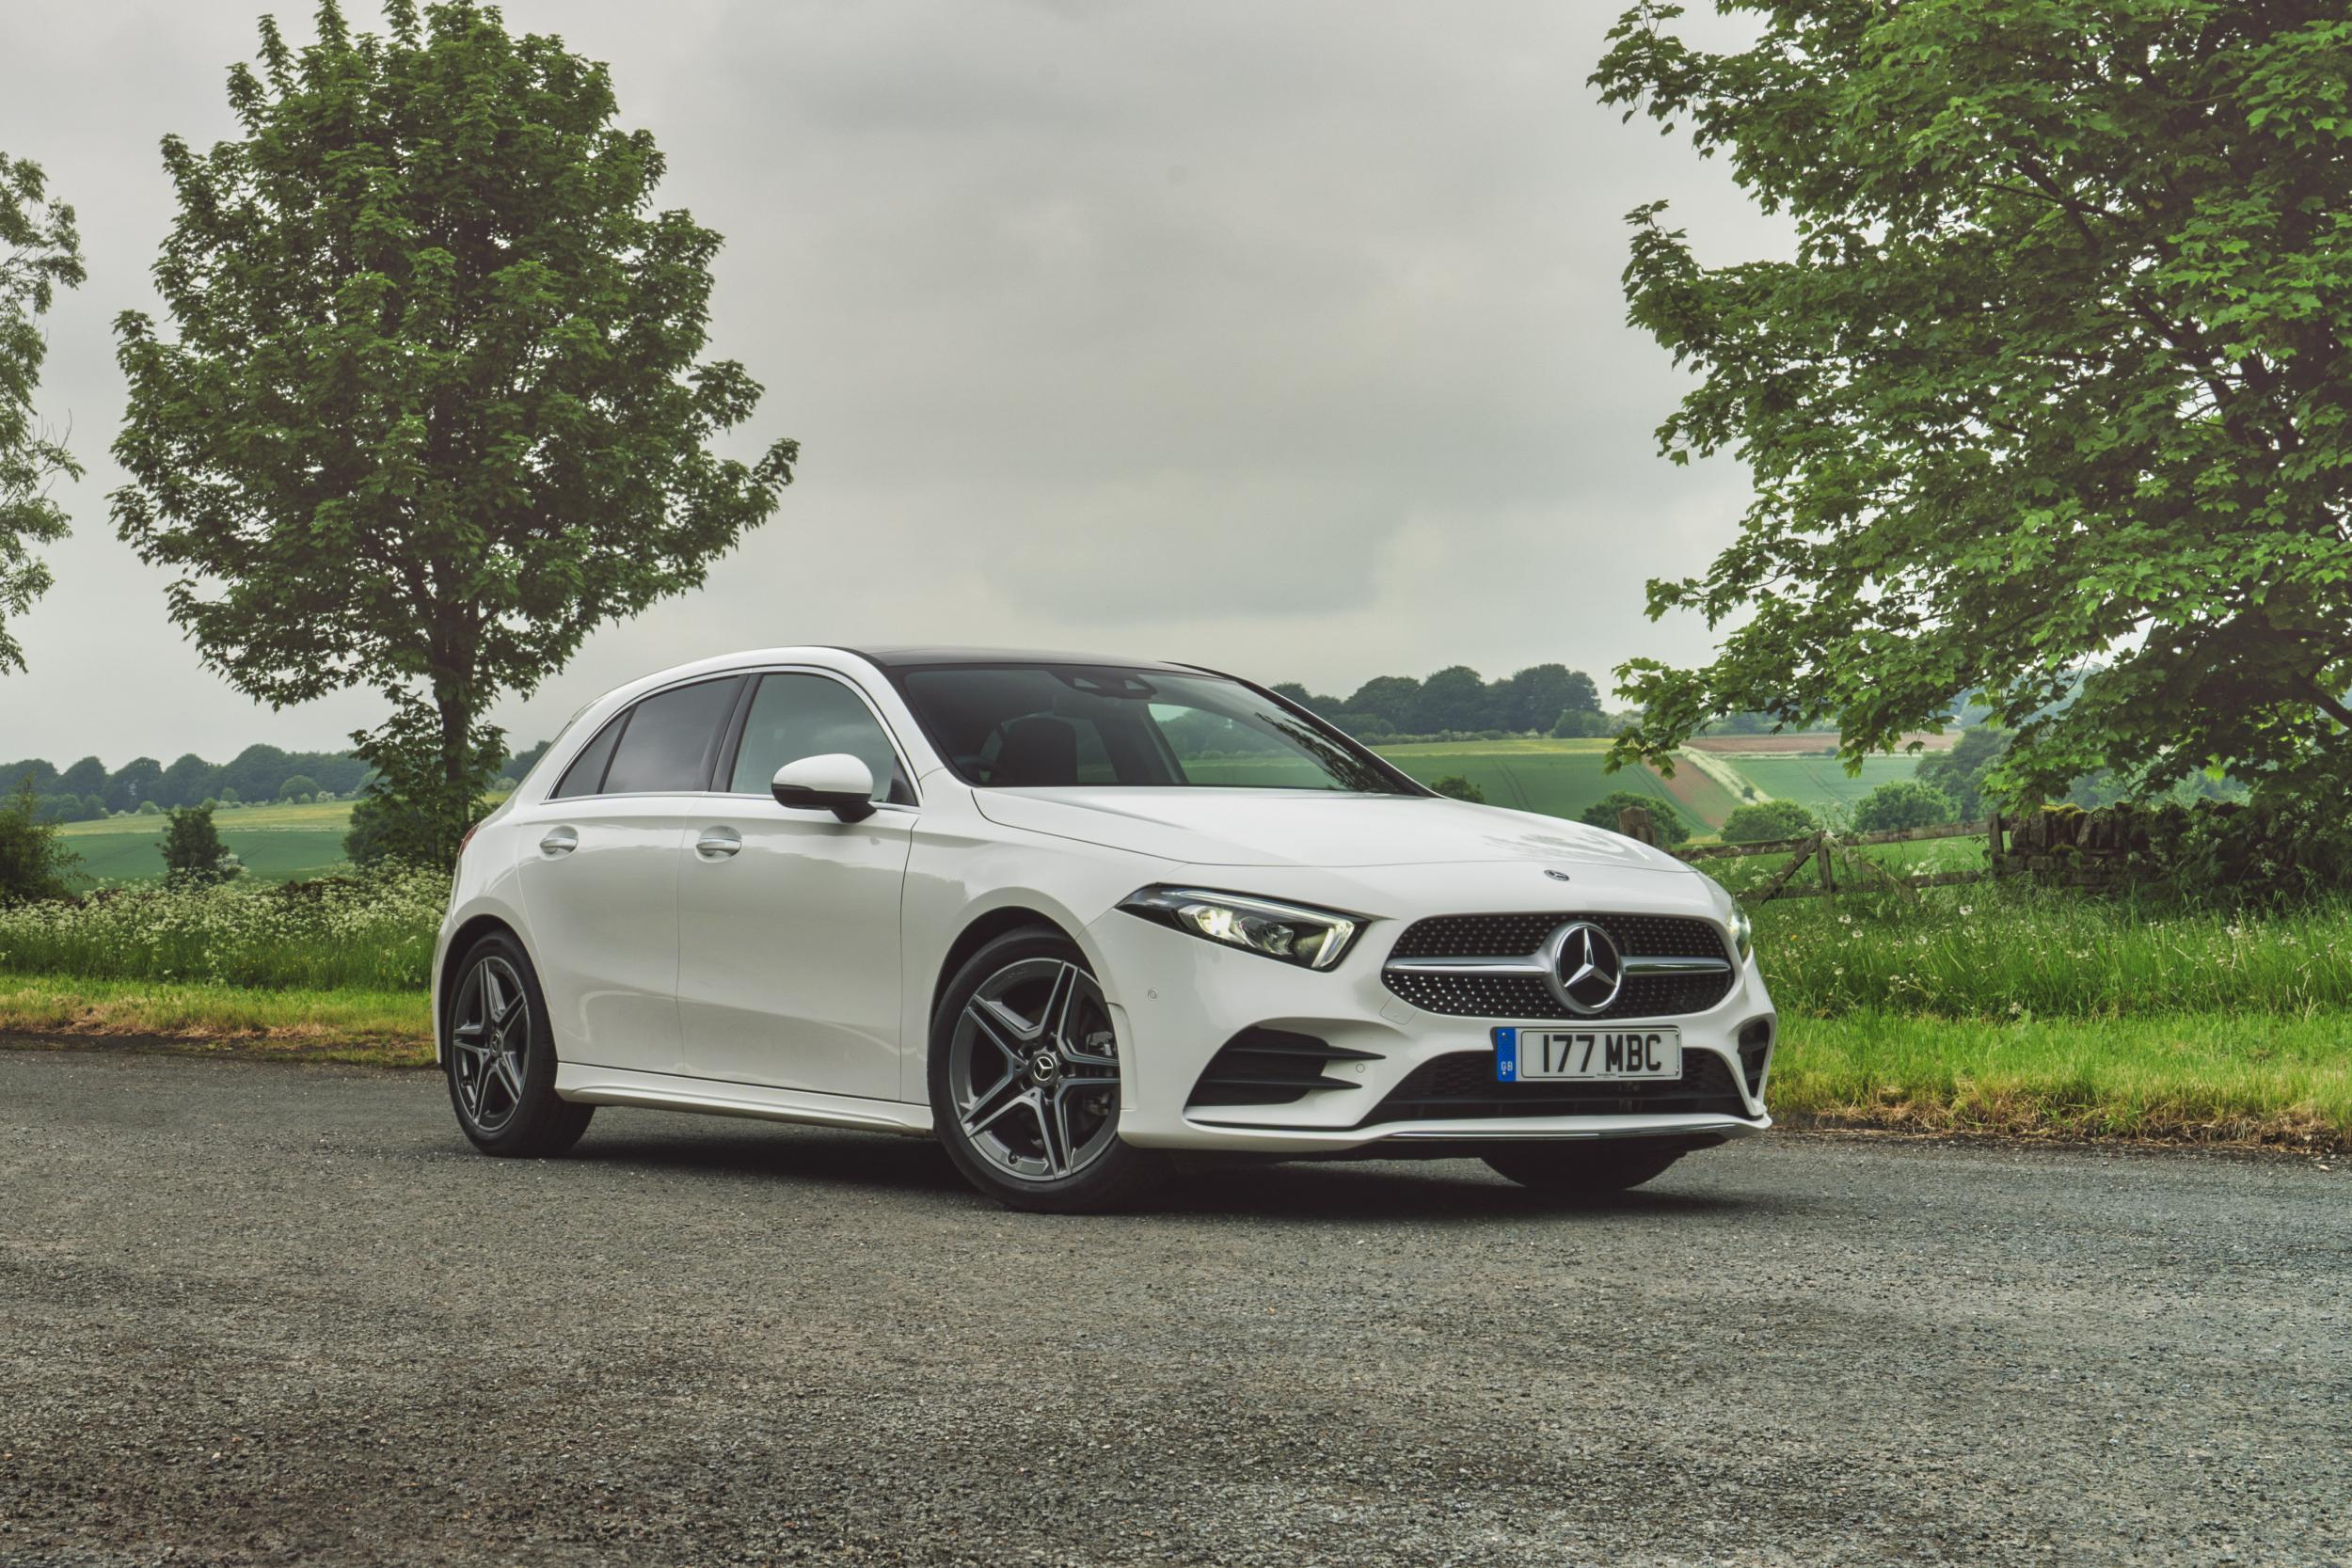 Mercedes-Benz A-Class review: Improvements can't justify paying a premium